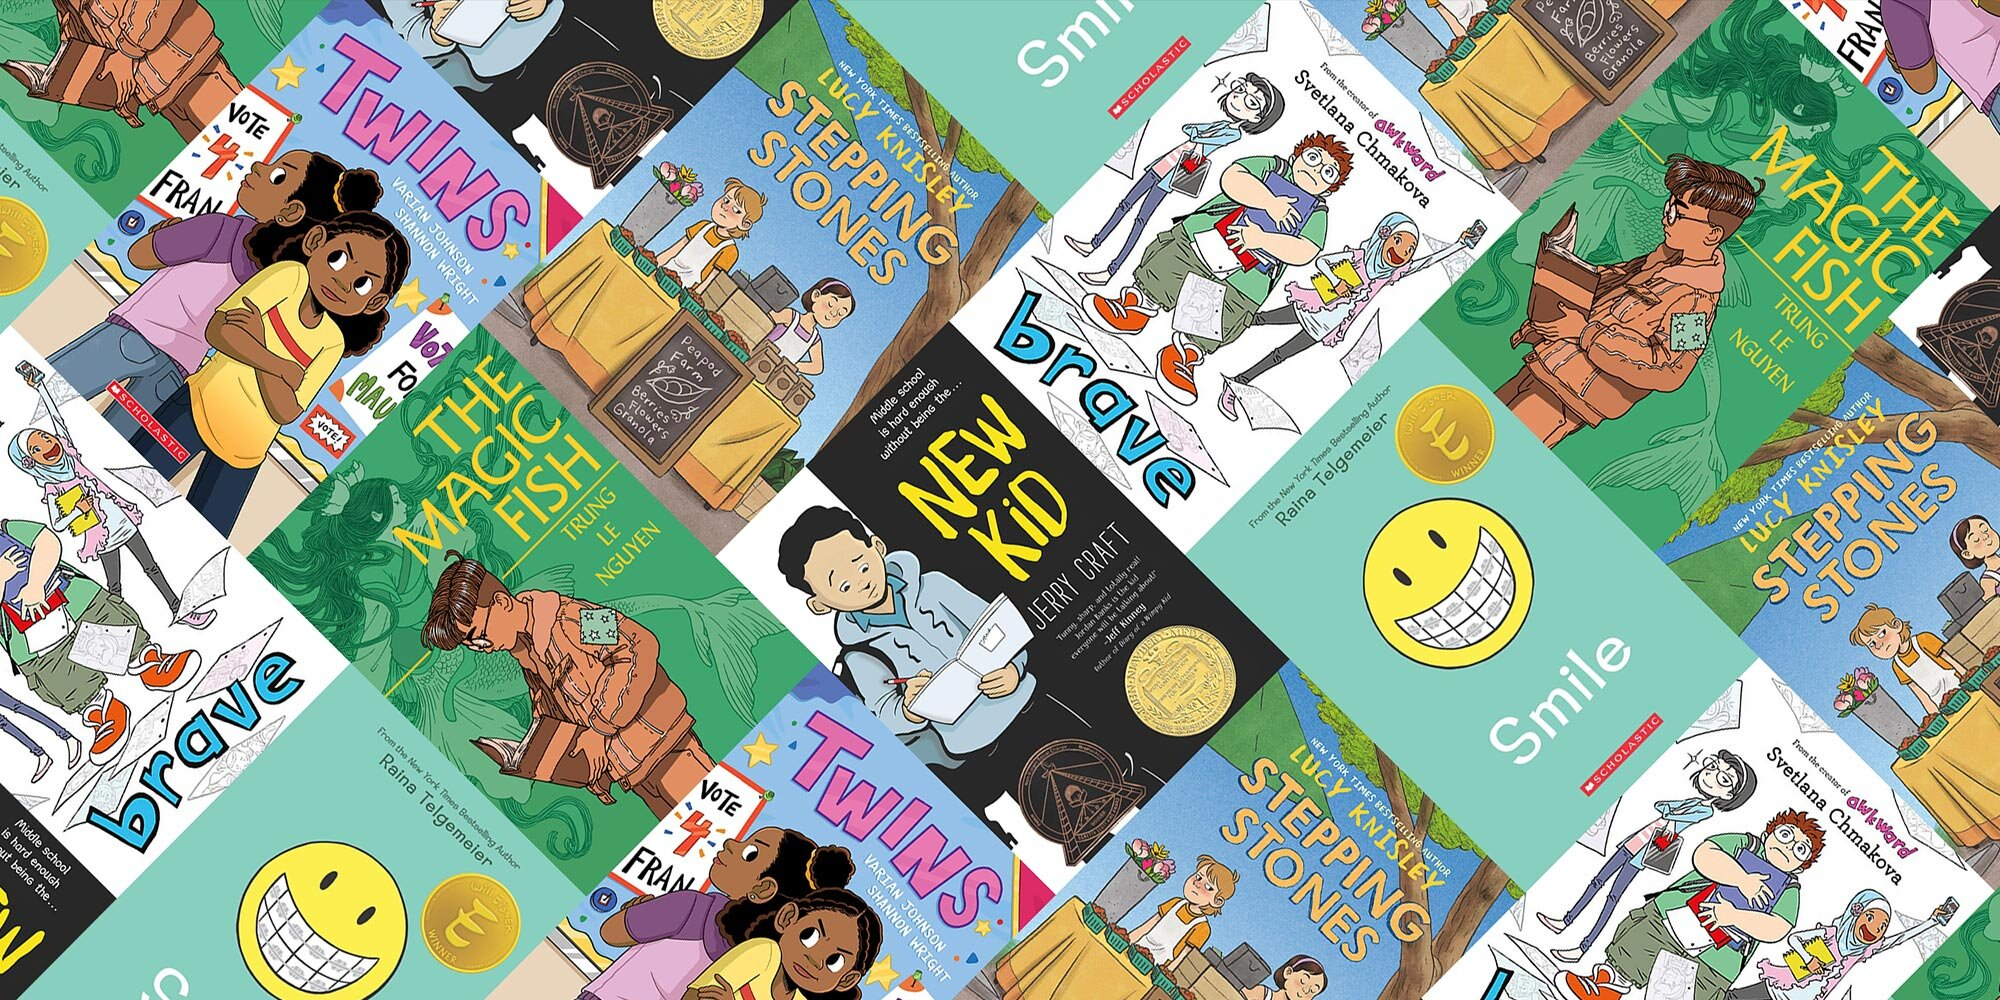 A guide to great slice-of-life graphic novels for young readers